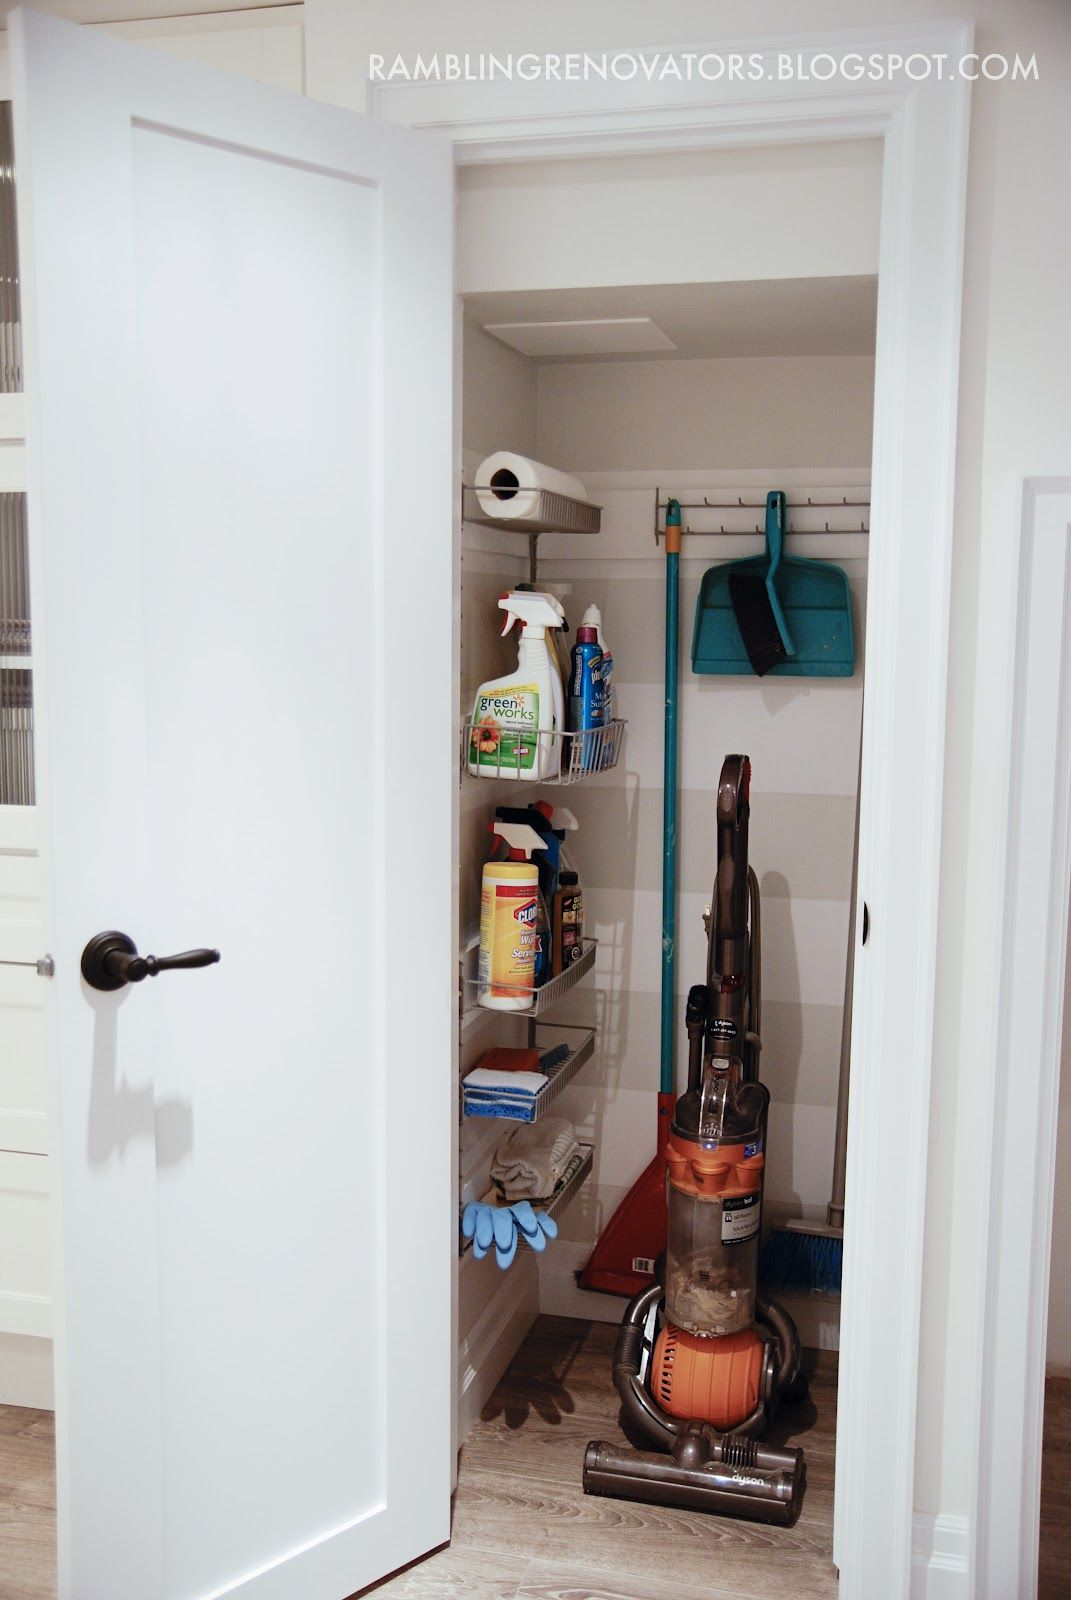 Rambling Renovators Pretty Broom Closet Broom Closet Organizer Cleaning Closet Utility Closet